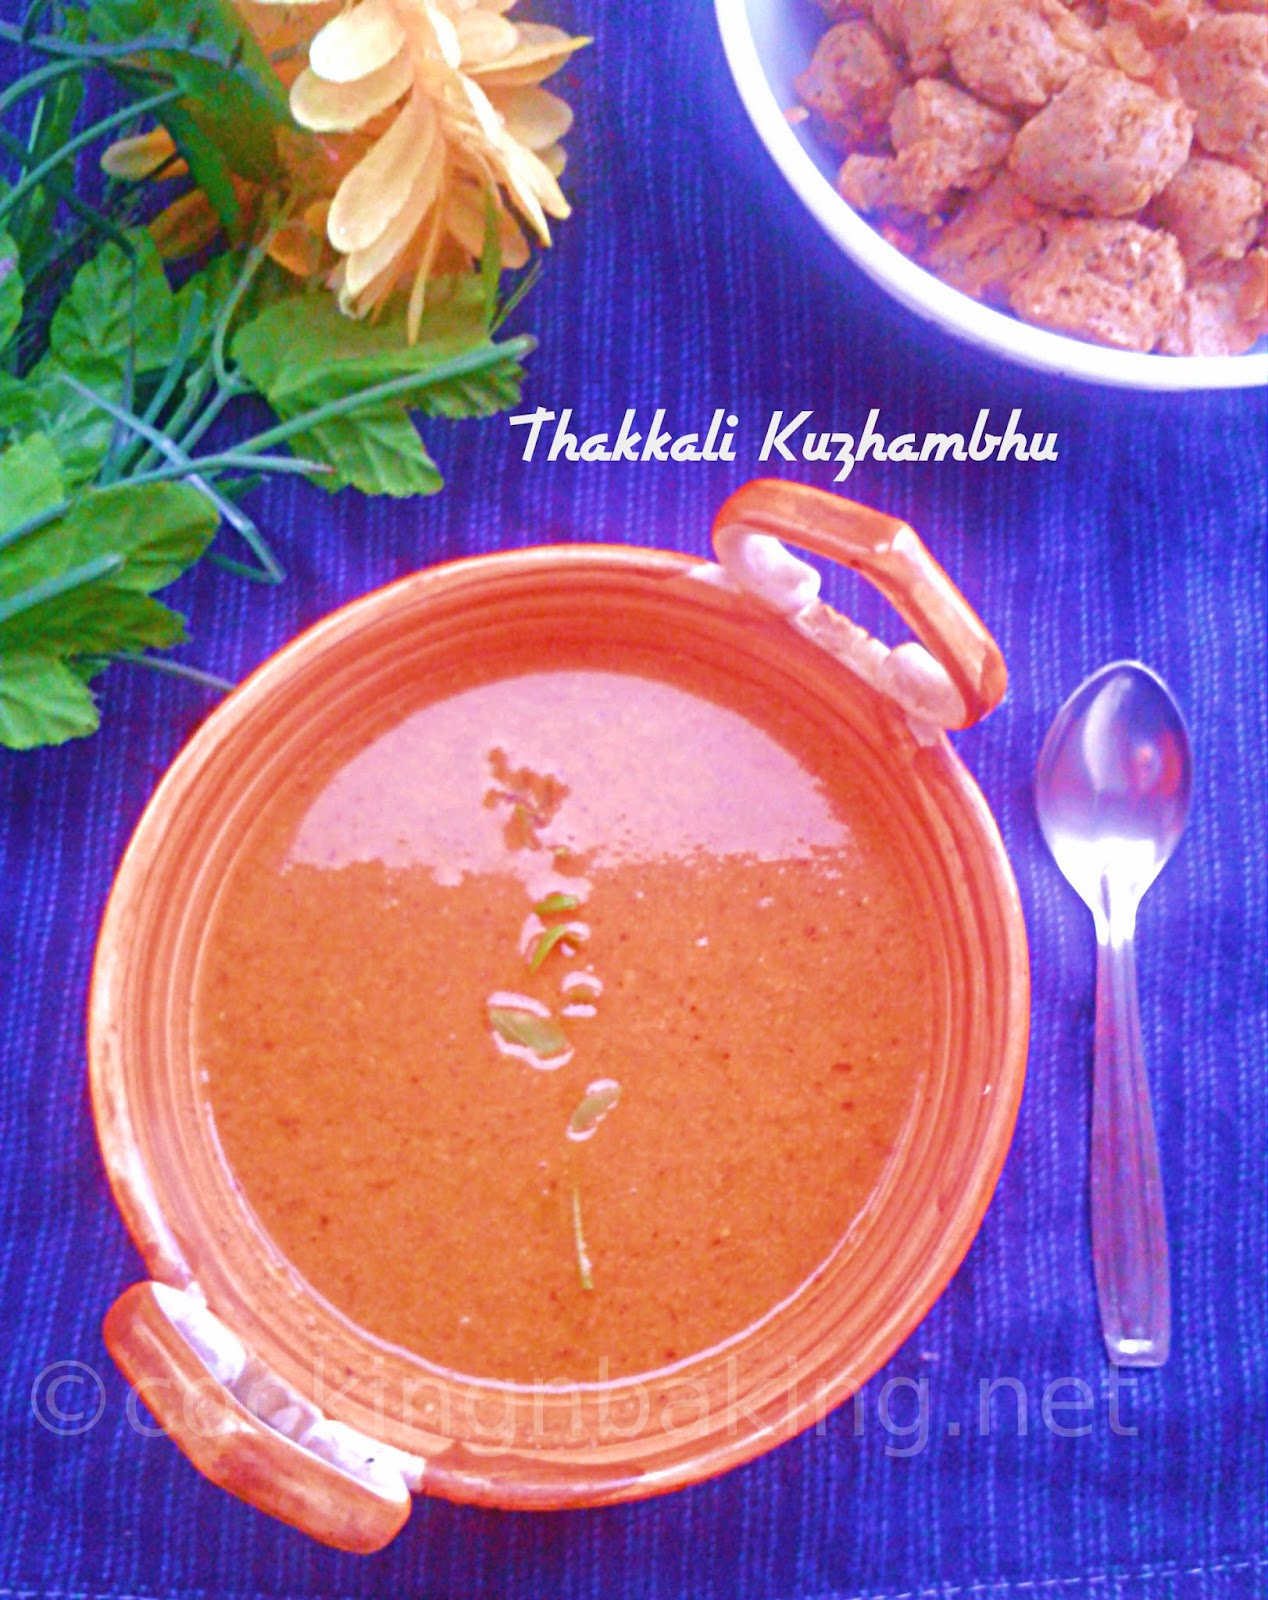 Thakkali Kuzhambhu | How to make Thakkali Kuzhambhu